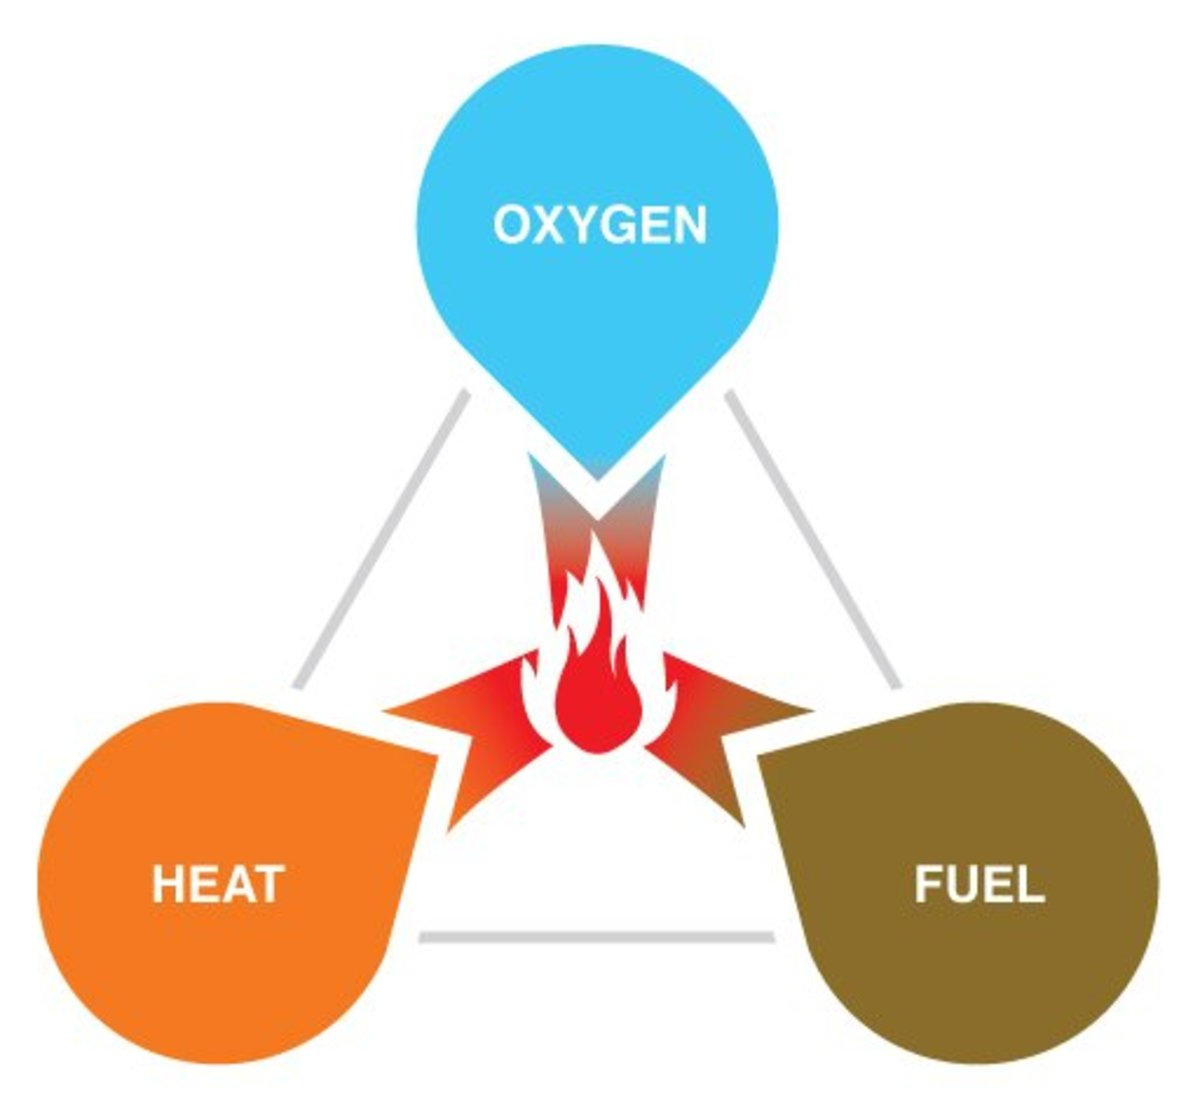 The fire triangle illustrates the components needed to start a fire.